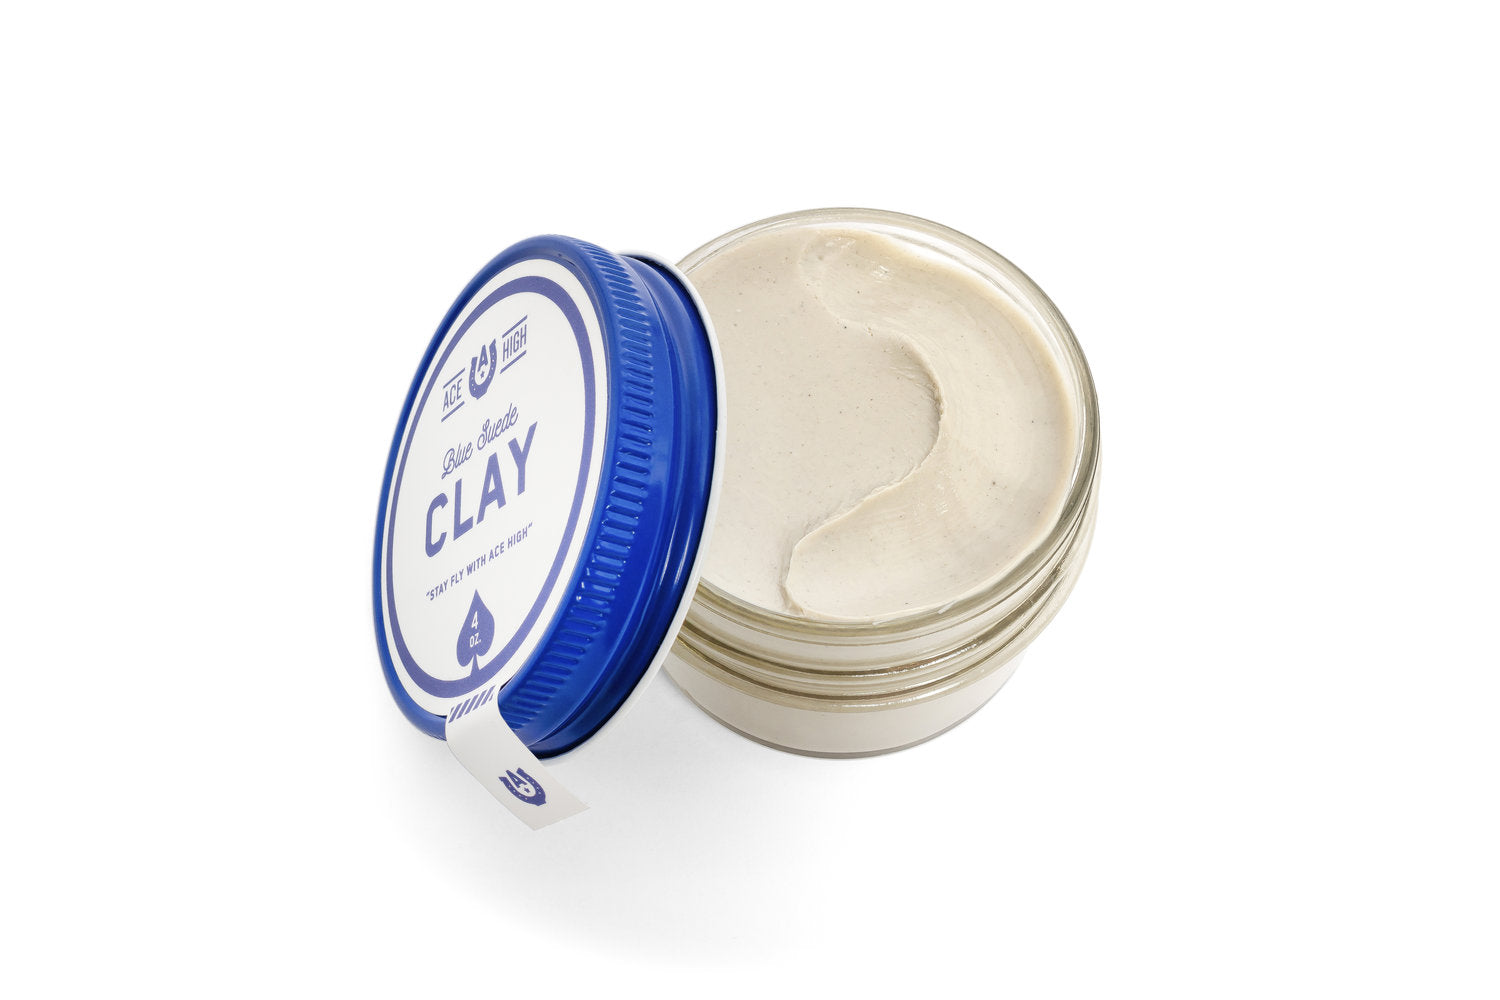 Ace High Clay Pomade